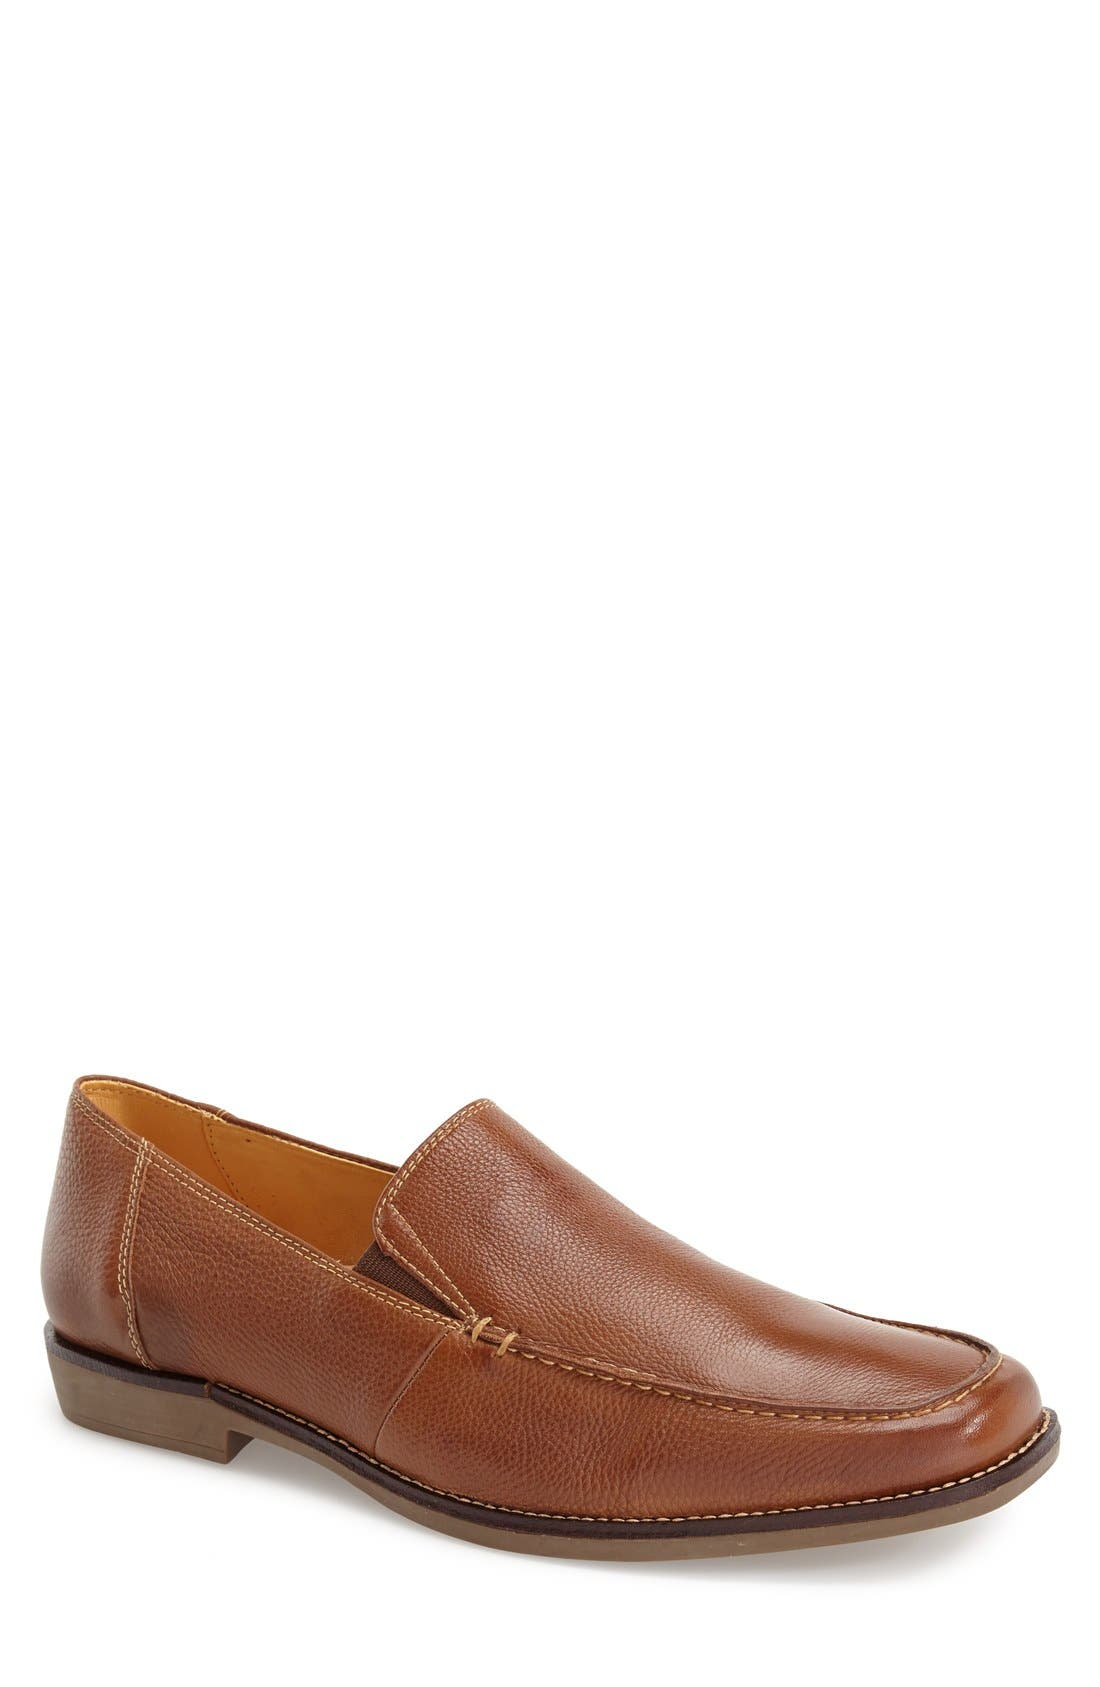 Sandro Moscoloni 'Easy' Leather Venetian Loafer (Men)